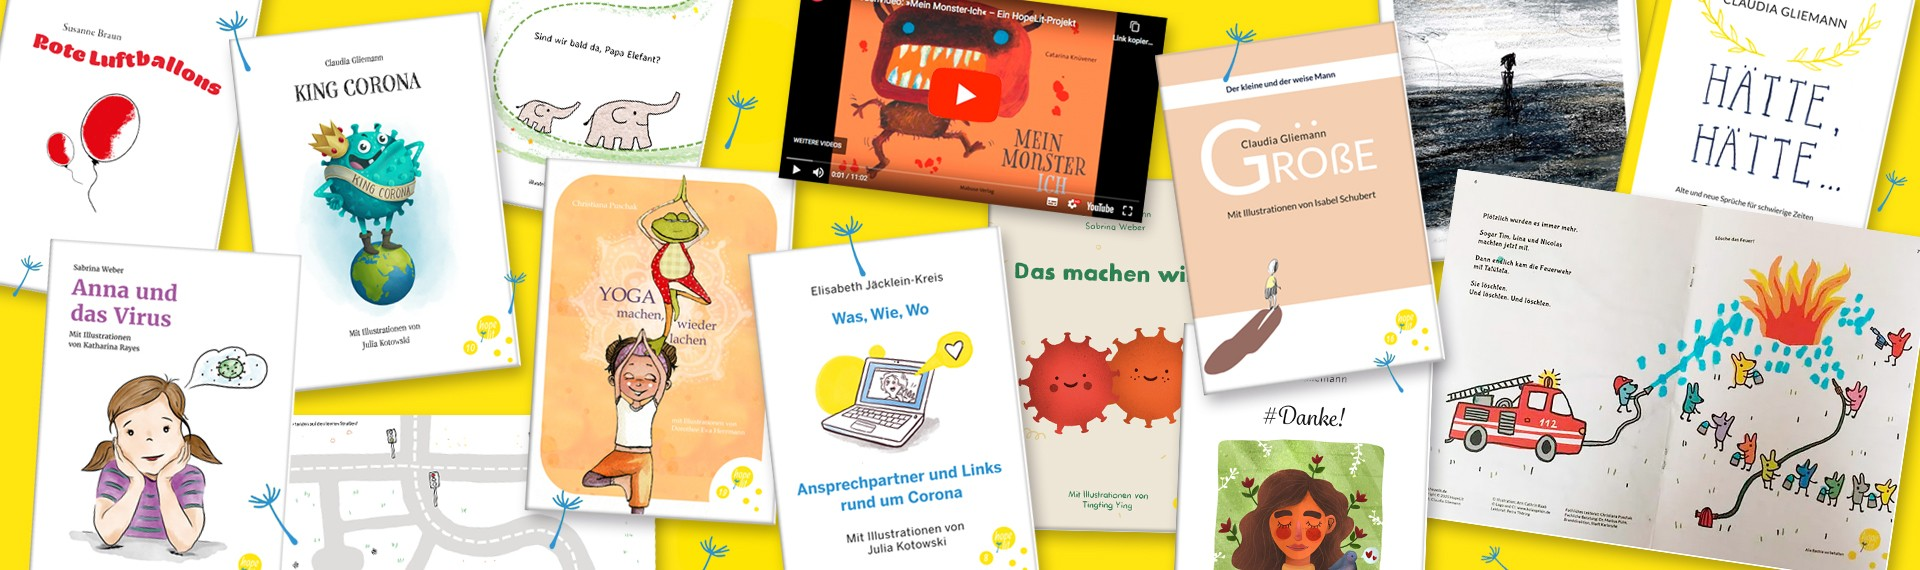 Stories, creative ideas and information galore about learning, laughing, and staying optimistic.